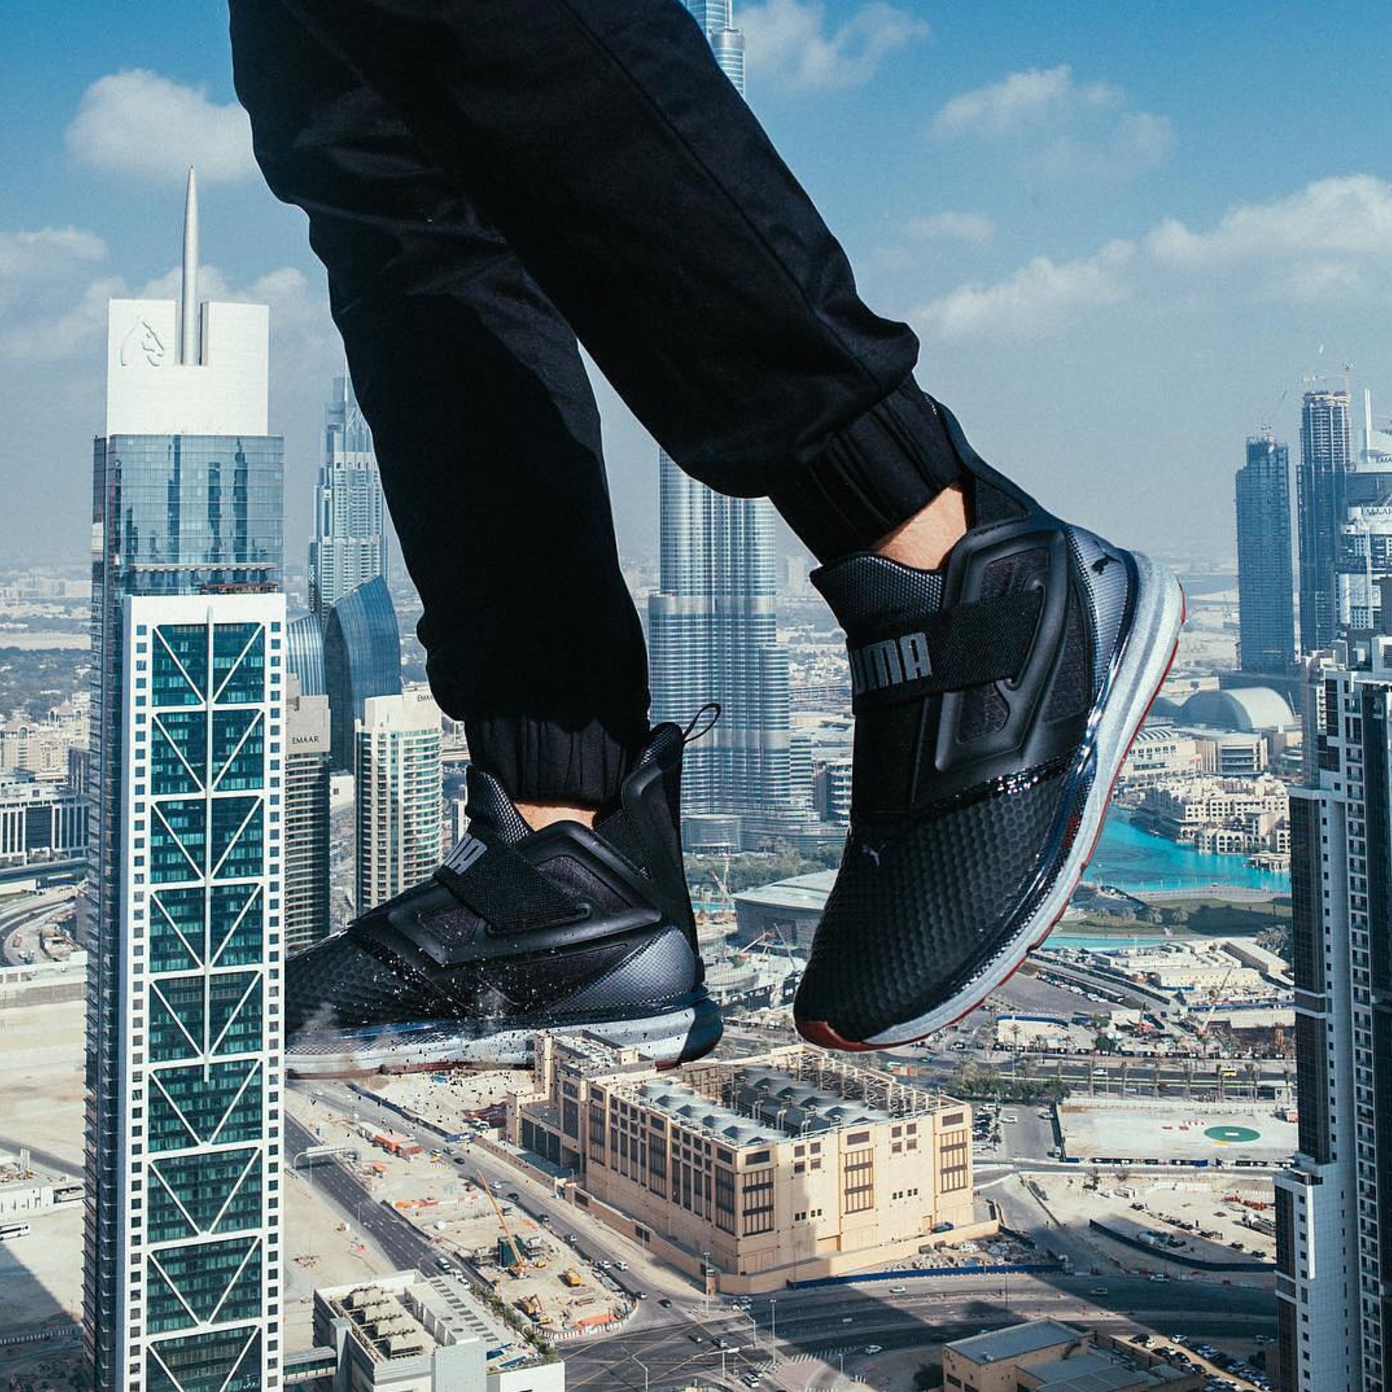 b680ab6400d Puma Launches the IGNITE Limitless Hi-Tech in Extreme and Mid ...